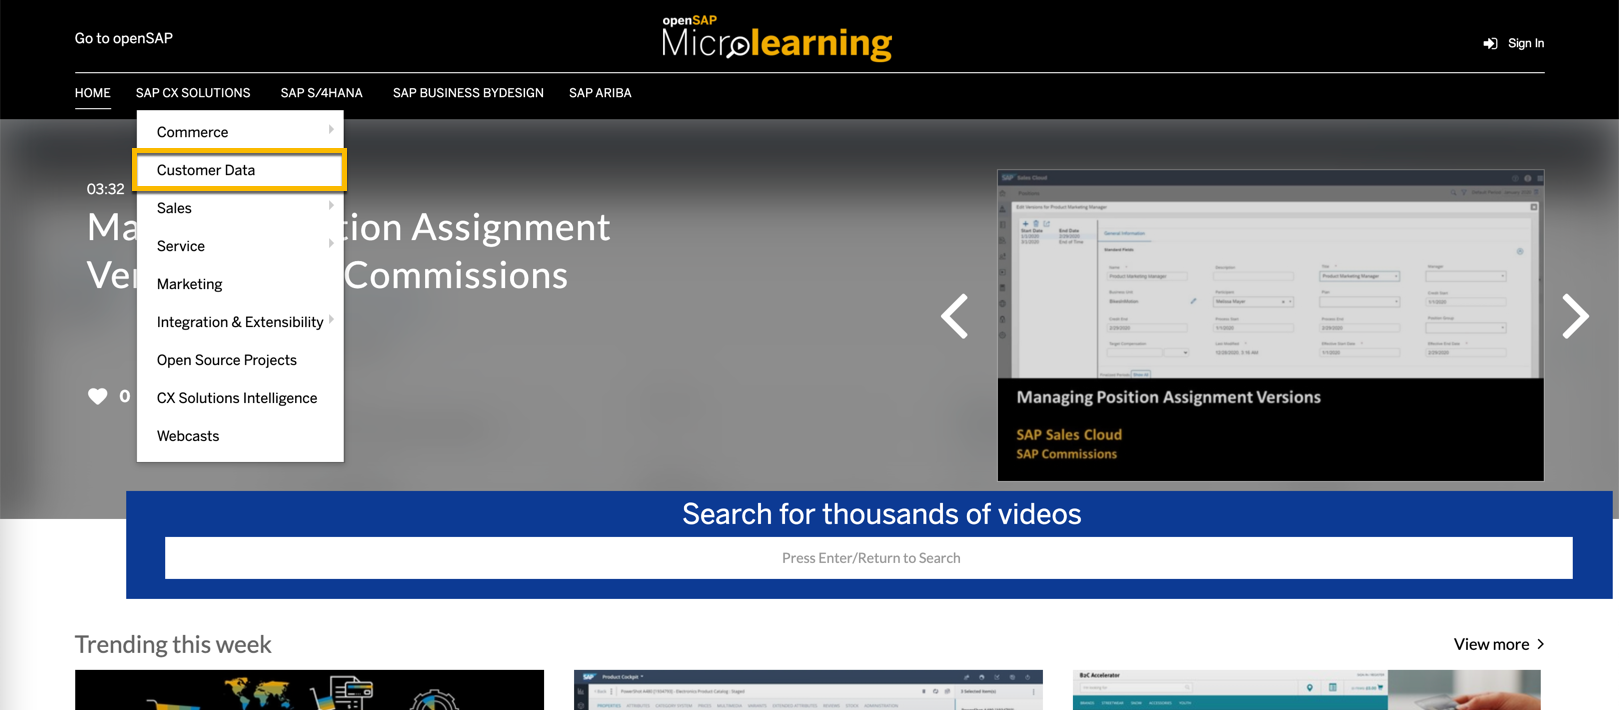 SAP%20Customer%20Data%20Cloud%20Videos%20on%20openSAP%20Microlearning